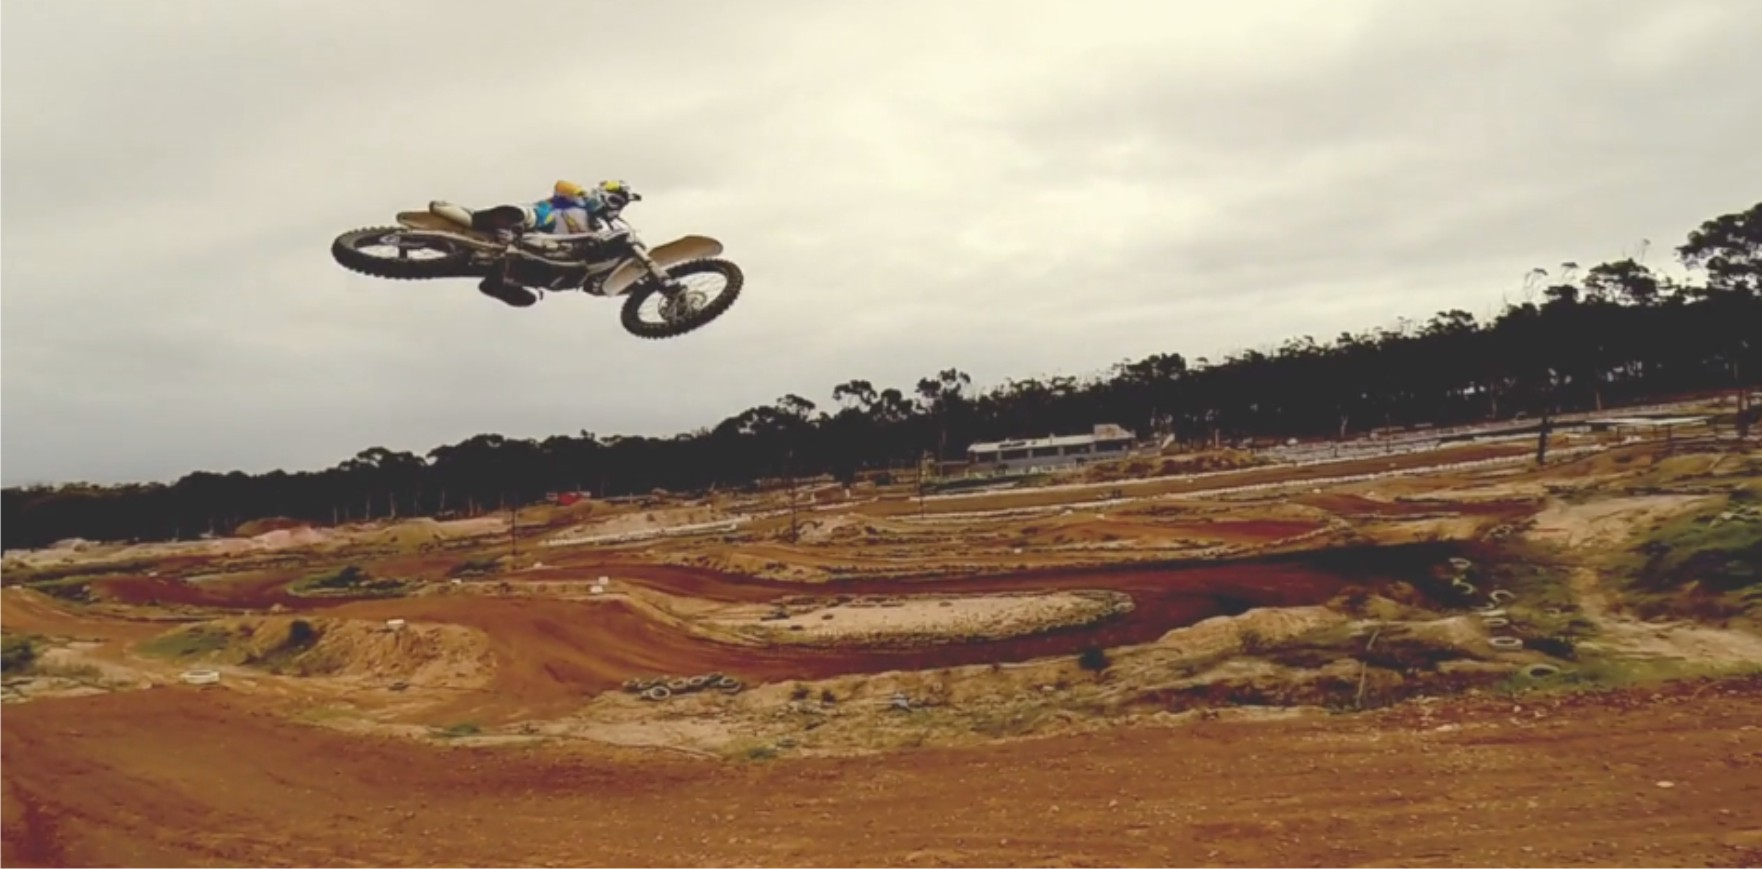 Anthony Raynard ripping in the Ice Cream motocross video